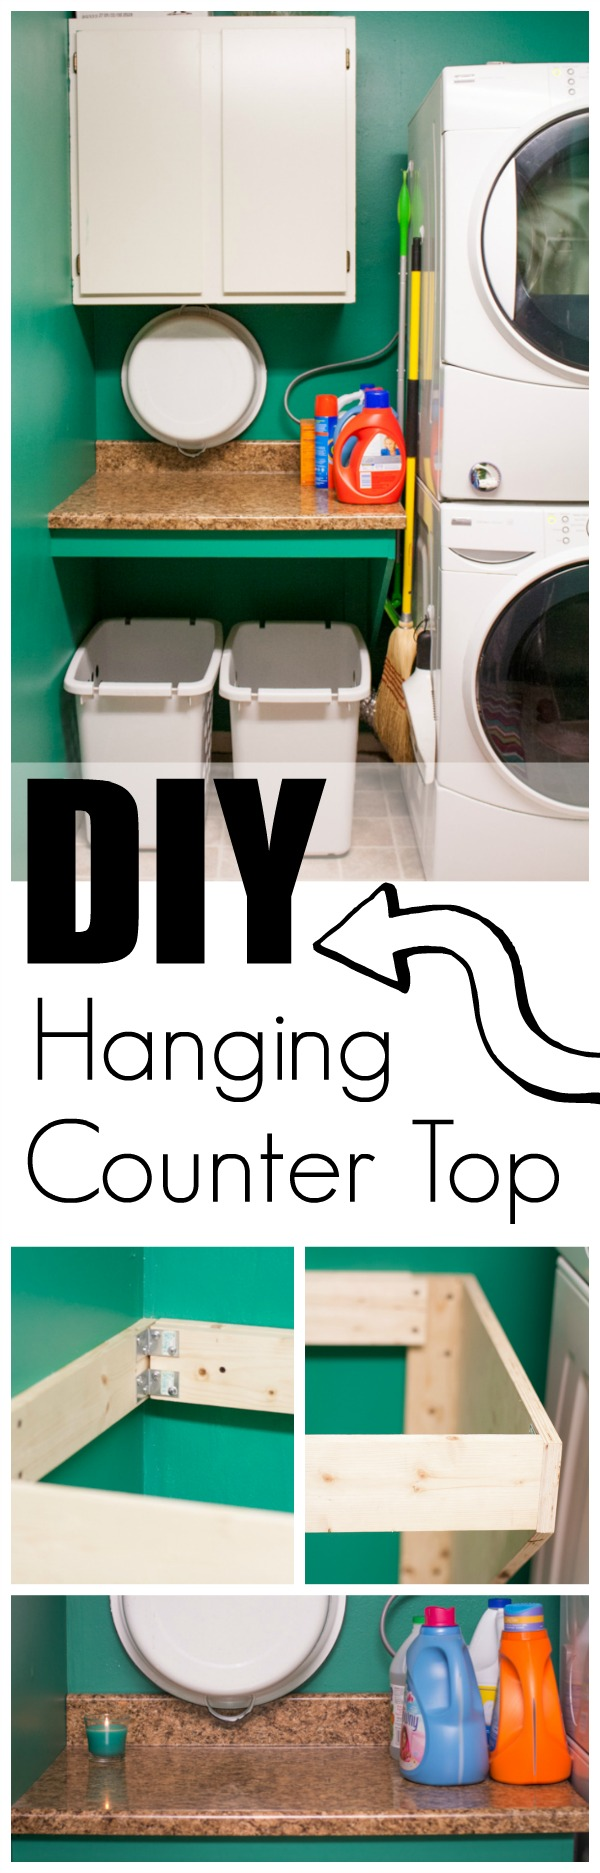 How to DIY a Hanging Counter Top to save space and making organizing easier.